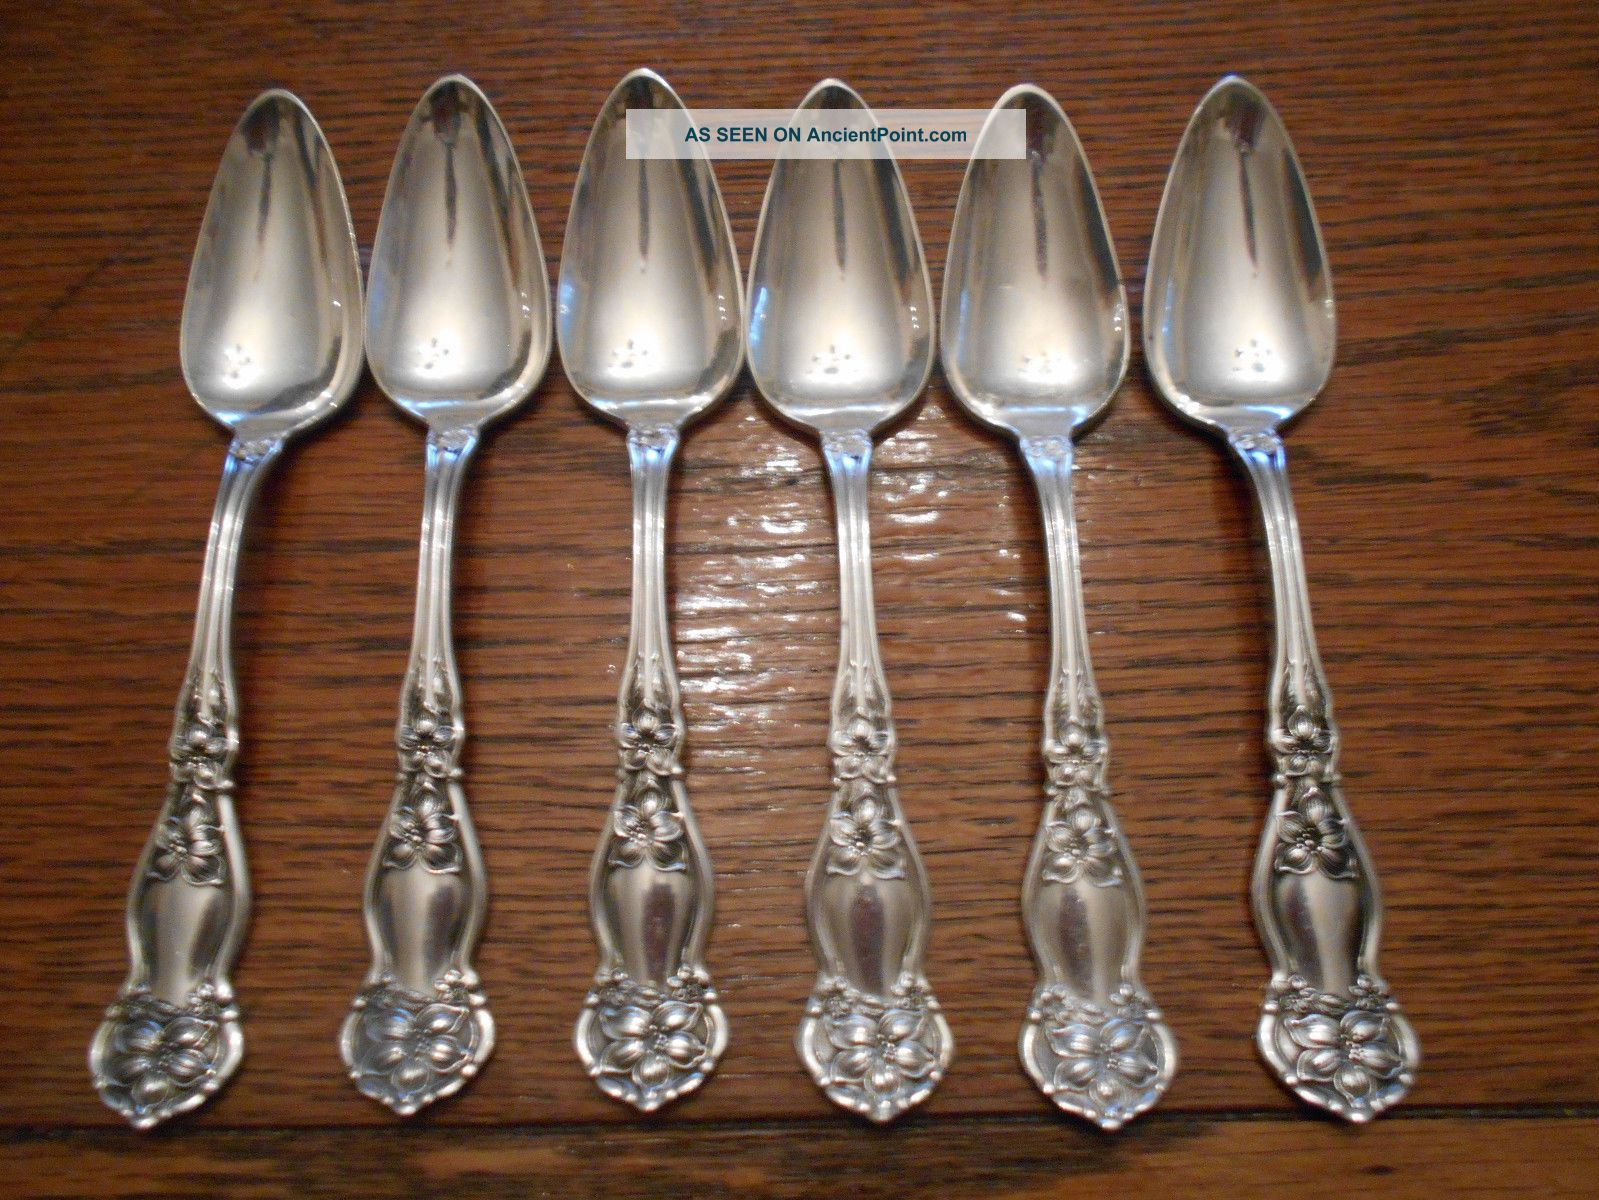 6 Rogers 1910 Orange Blossom Pattern Fruit Or Grapefruit Spoons Is Silverplate Flatware & Silverware photo